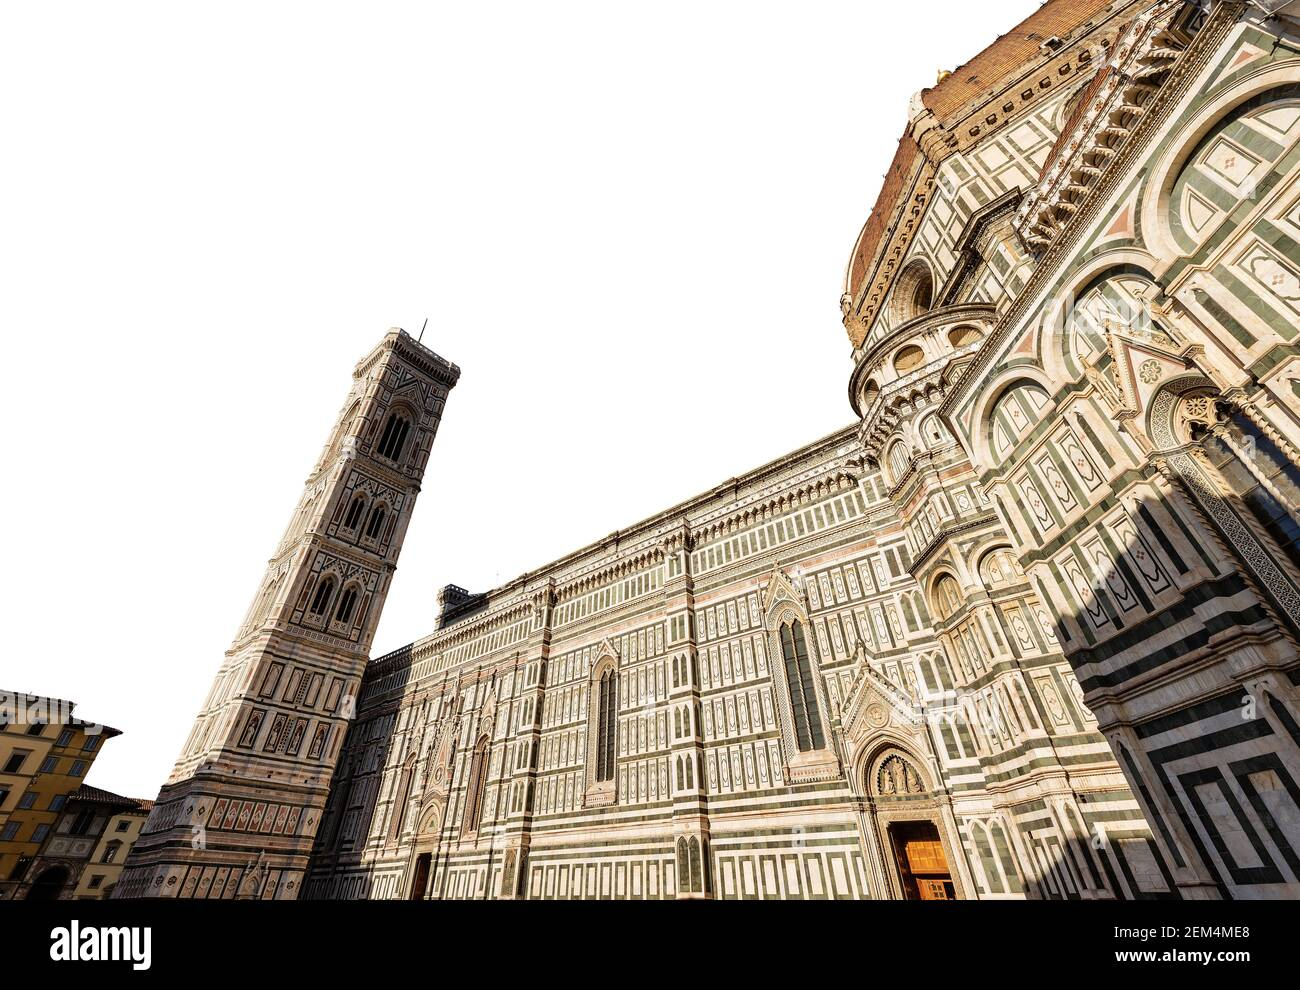 Florence Cathedral isolated on white background. Duomo of Santa Maria del Fiore and bell tower of Giotto (Campanile). Tuscany, Italy, Europe. Stock Photo